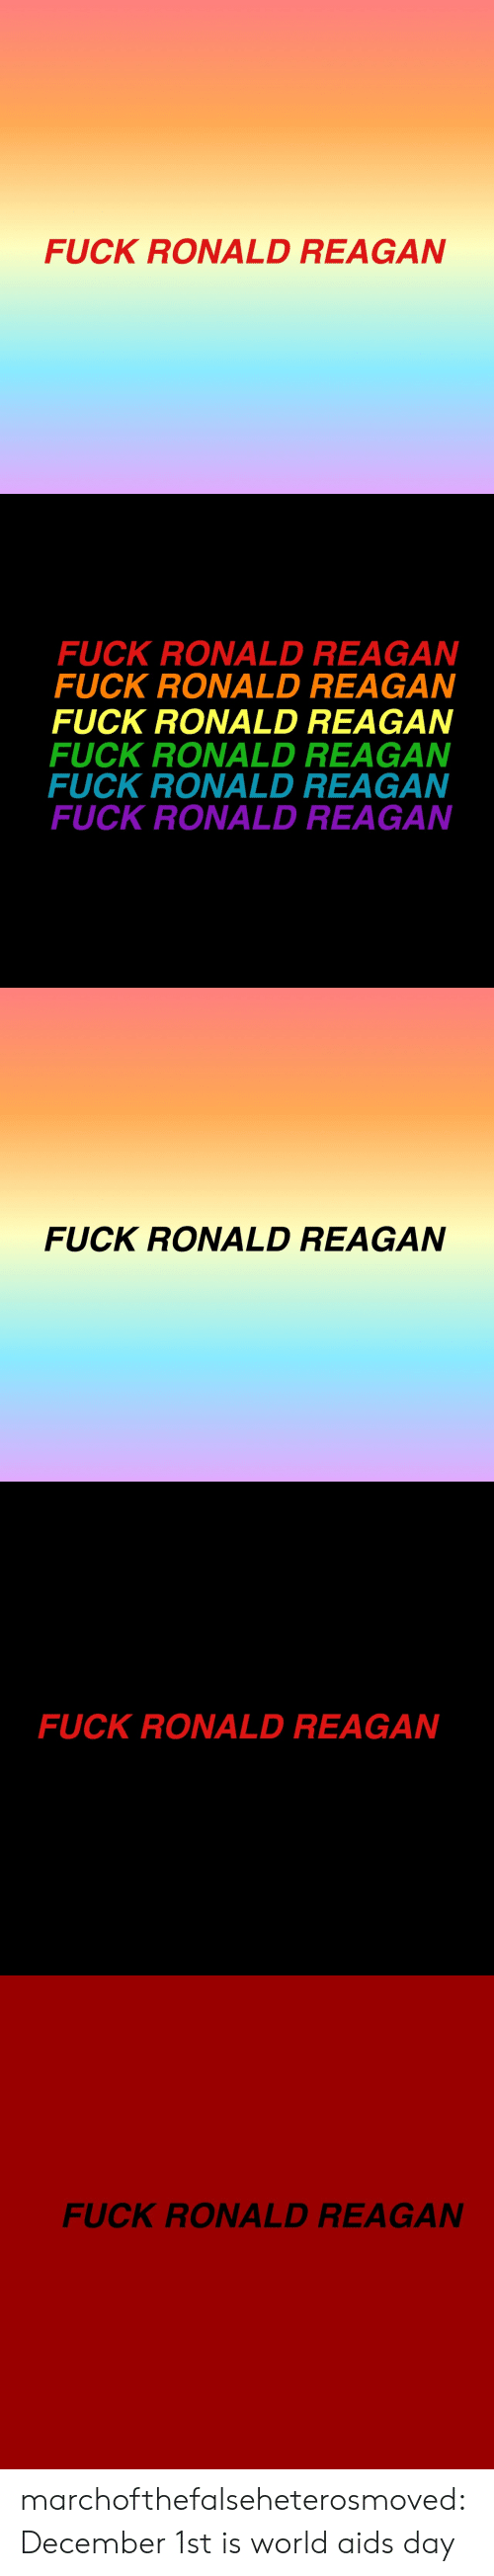 December 1St: FUCK RONALD REAGAN   FUCK RONALD REAGAN  FUCK RONALD REAGAN  FUCK RONALD REAGAN  FUCK RONALD REAGAN  FUCK RONALD REAGAN  FUCK RONALD REAGAN   FUCK RONALD REAGAN   FUCK RONALD REAGAN   FUCK RONALD REAGAN marchofthefalseheterosmoved: December 1st is world aids day